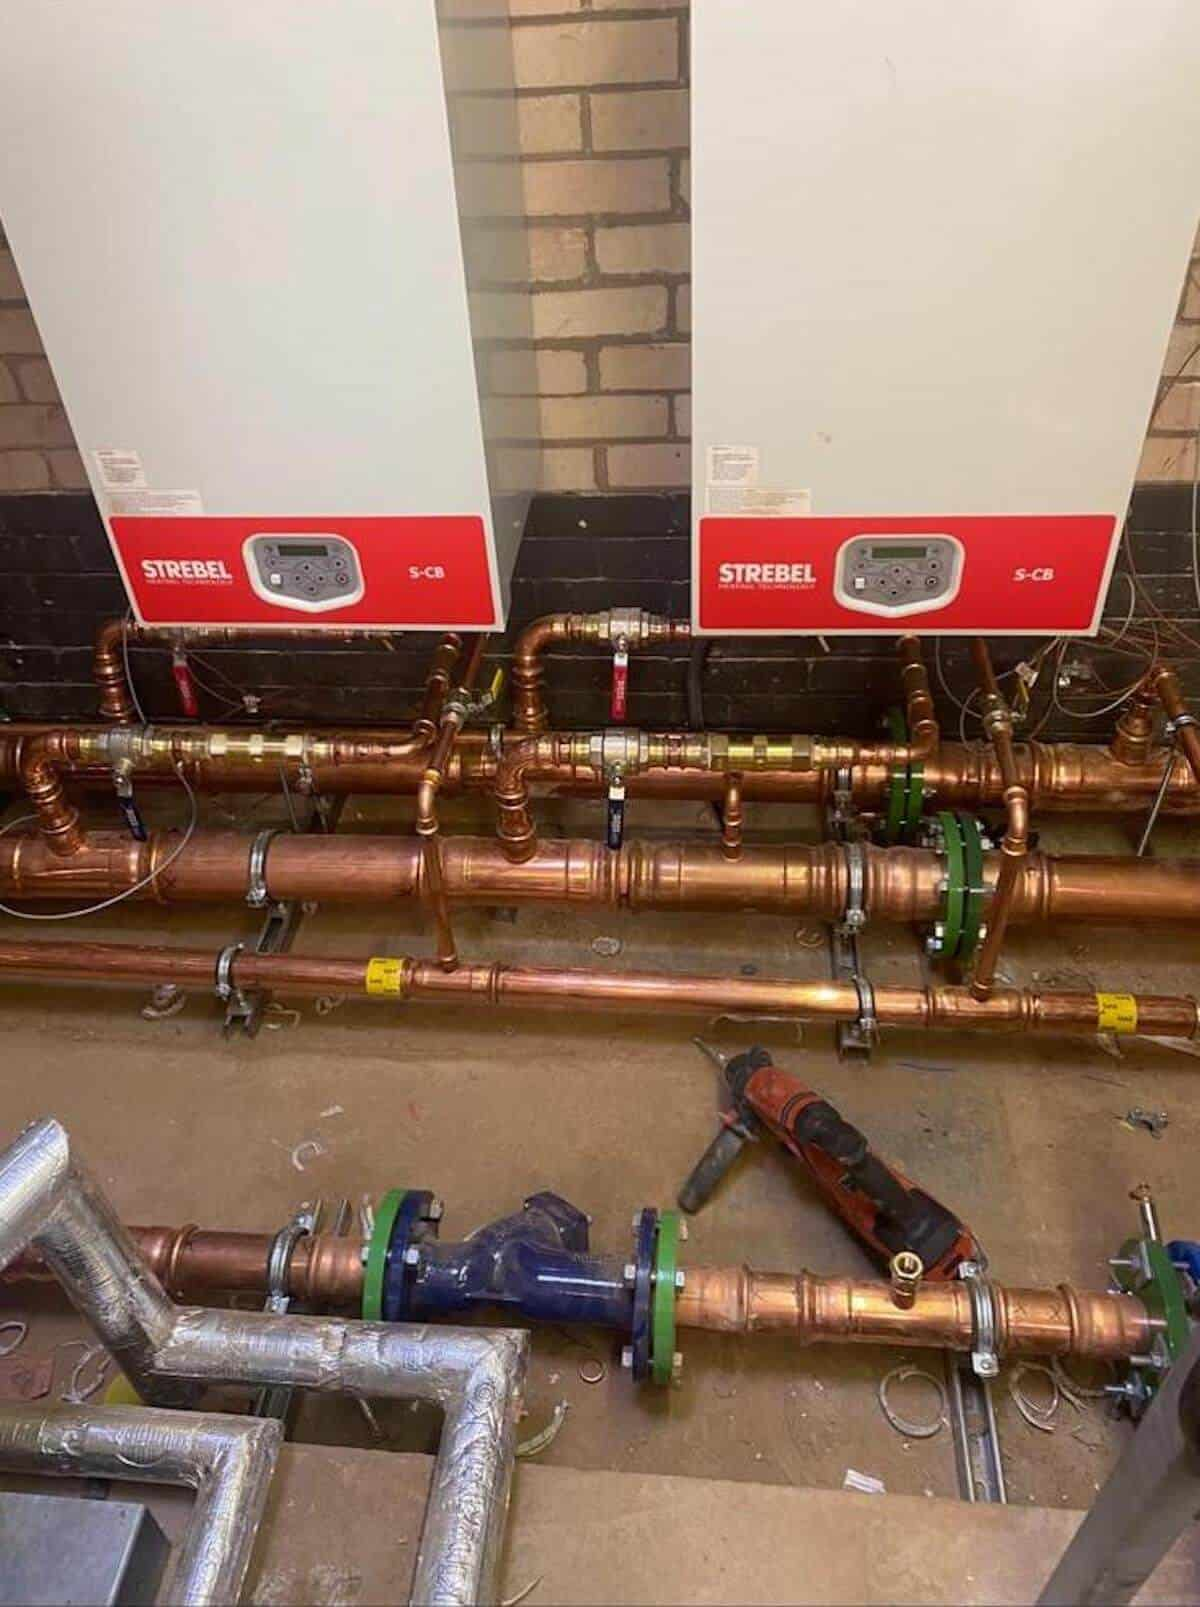 Two new Strebel boilers installed and ready to go with pipework